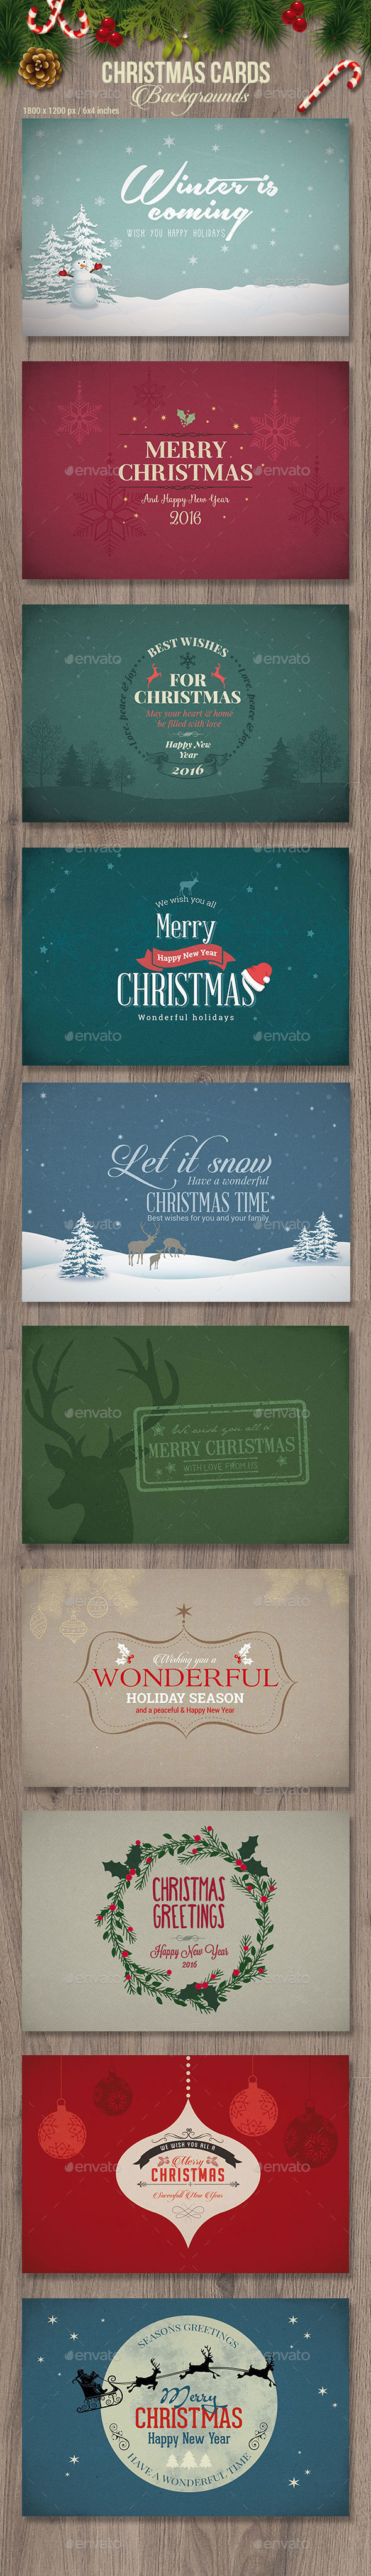 Christmas Cards / Backgrounds - Holiday Greeting Cards